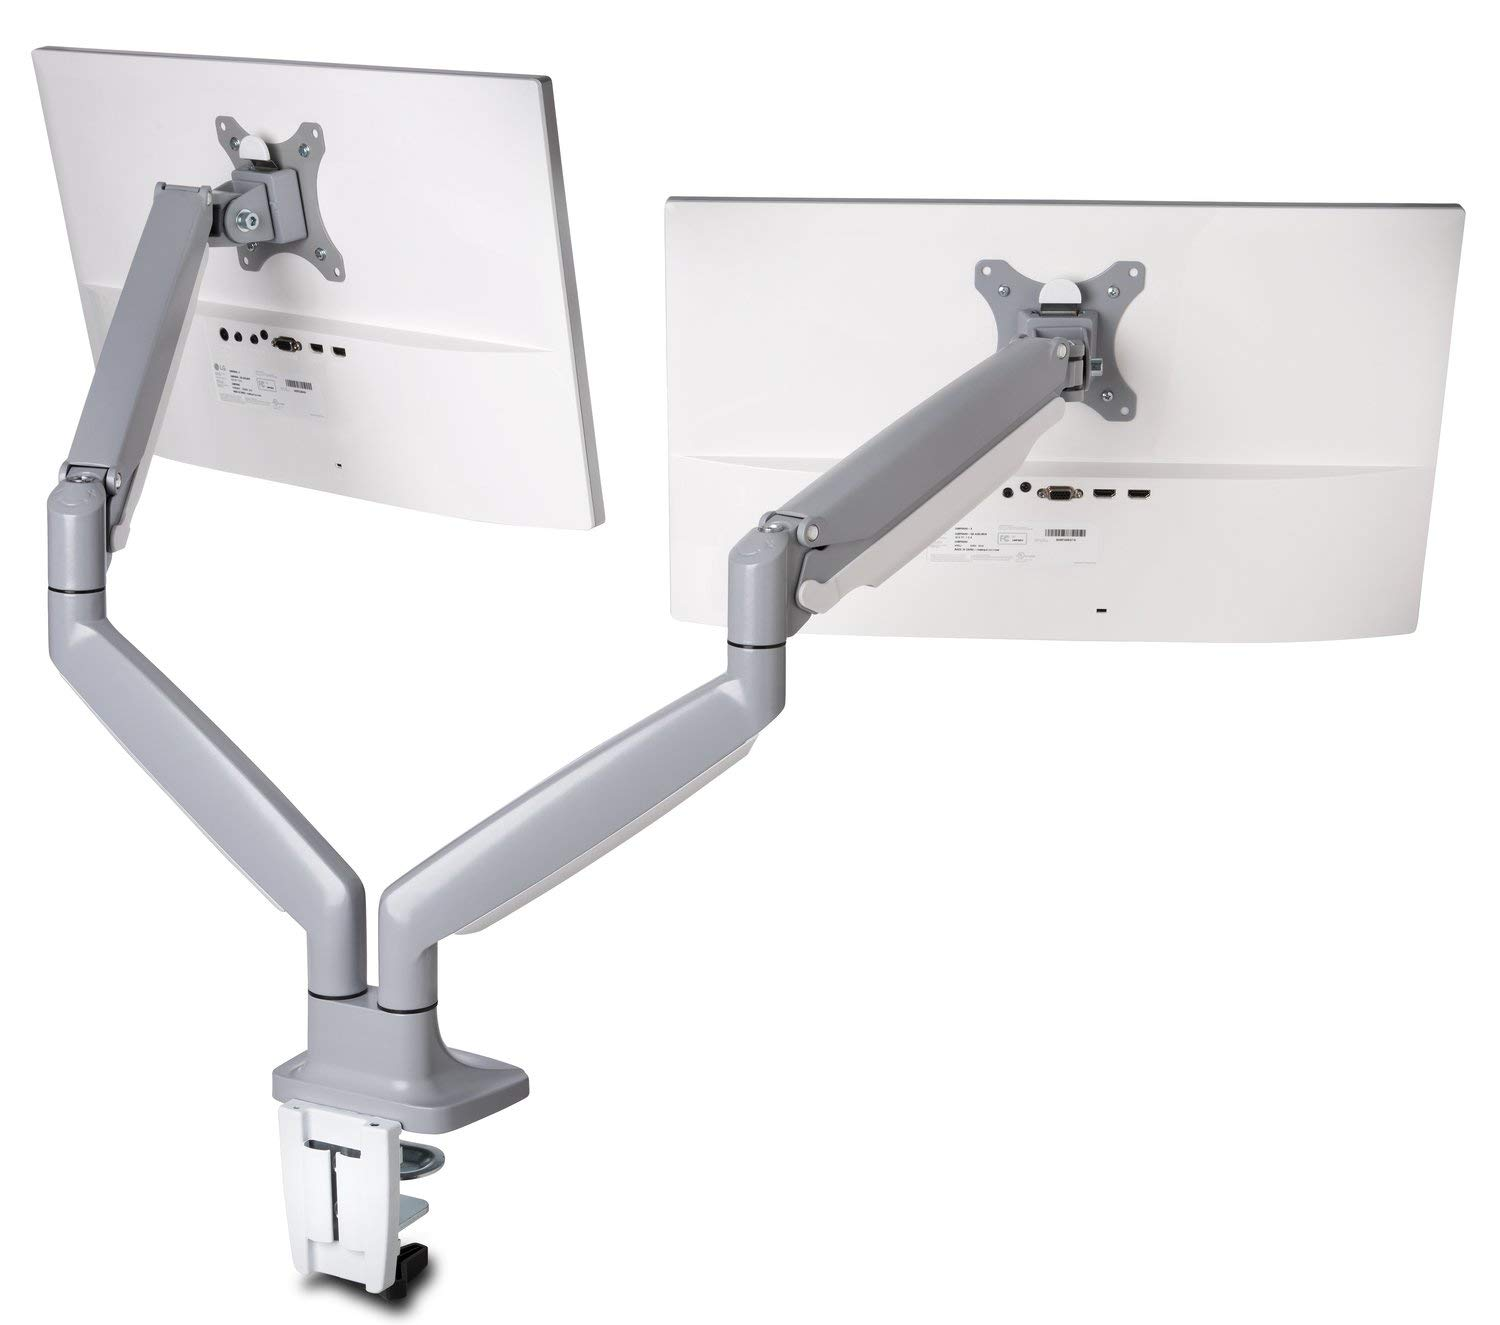 Kensington Monitor Arm One Touch Height Adjustable by Kensington